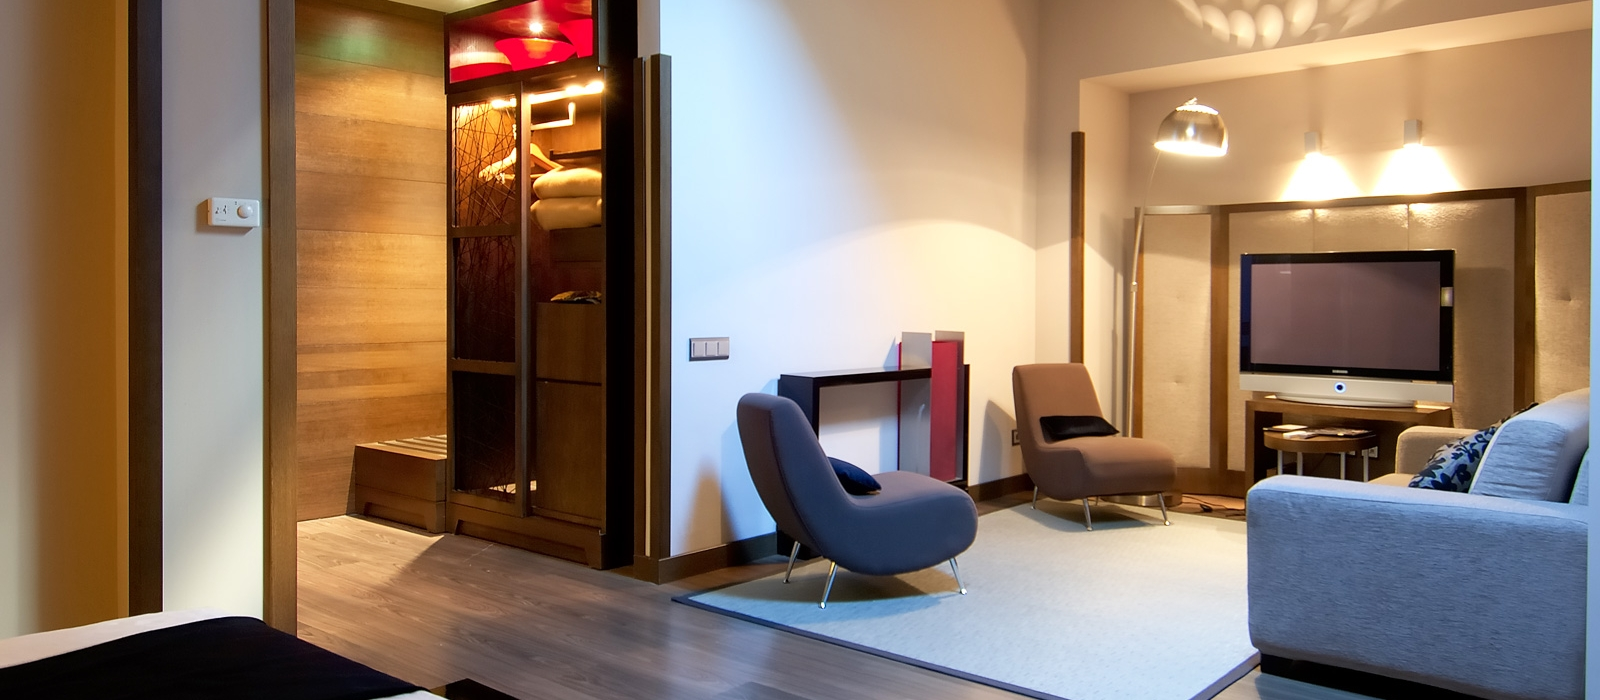 Rooms Hotel Madrid Soho - Vincci Hotels - Junior Suite